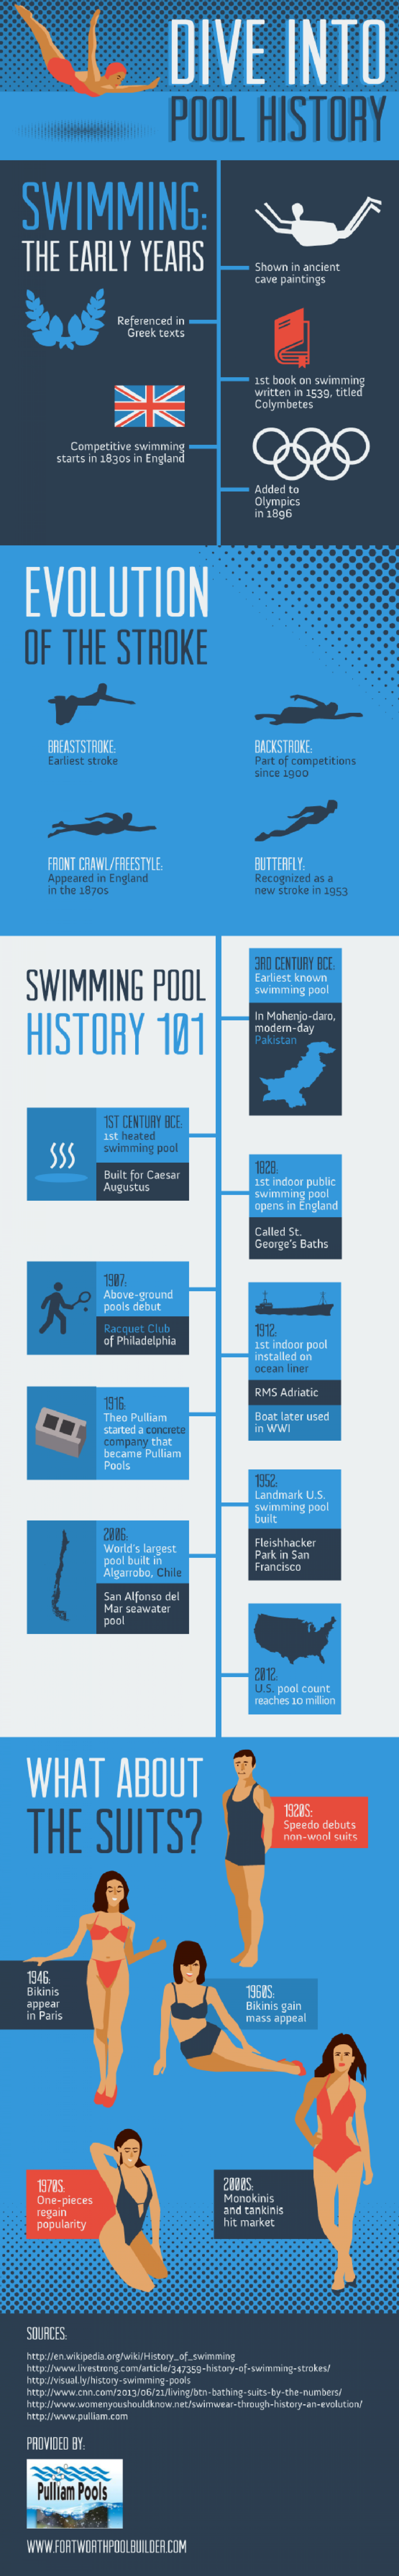 Dive into Pool History Infographic